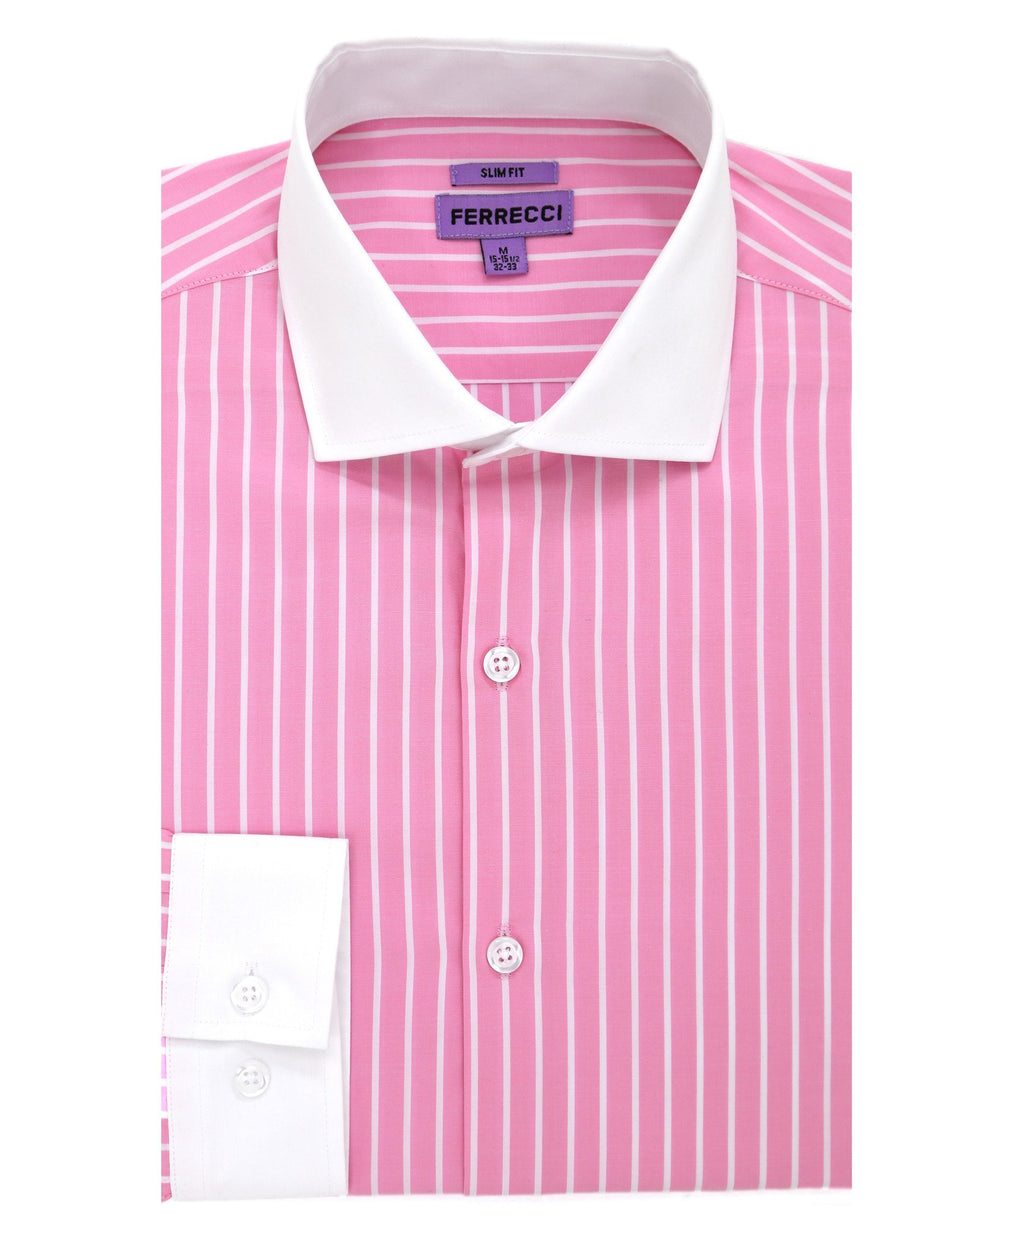 The Pitt Slim Fit Cotton Dress Shirt - Giorgio's Menswear